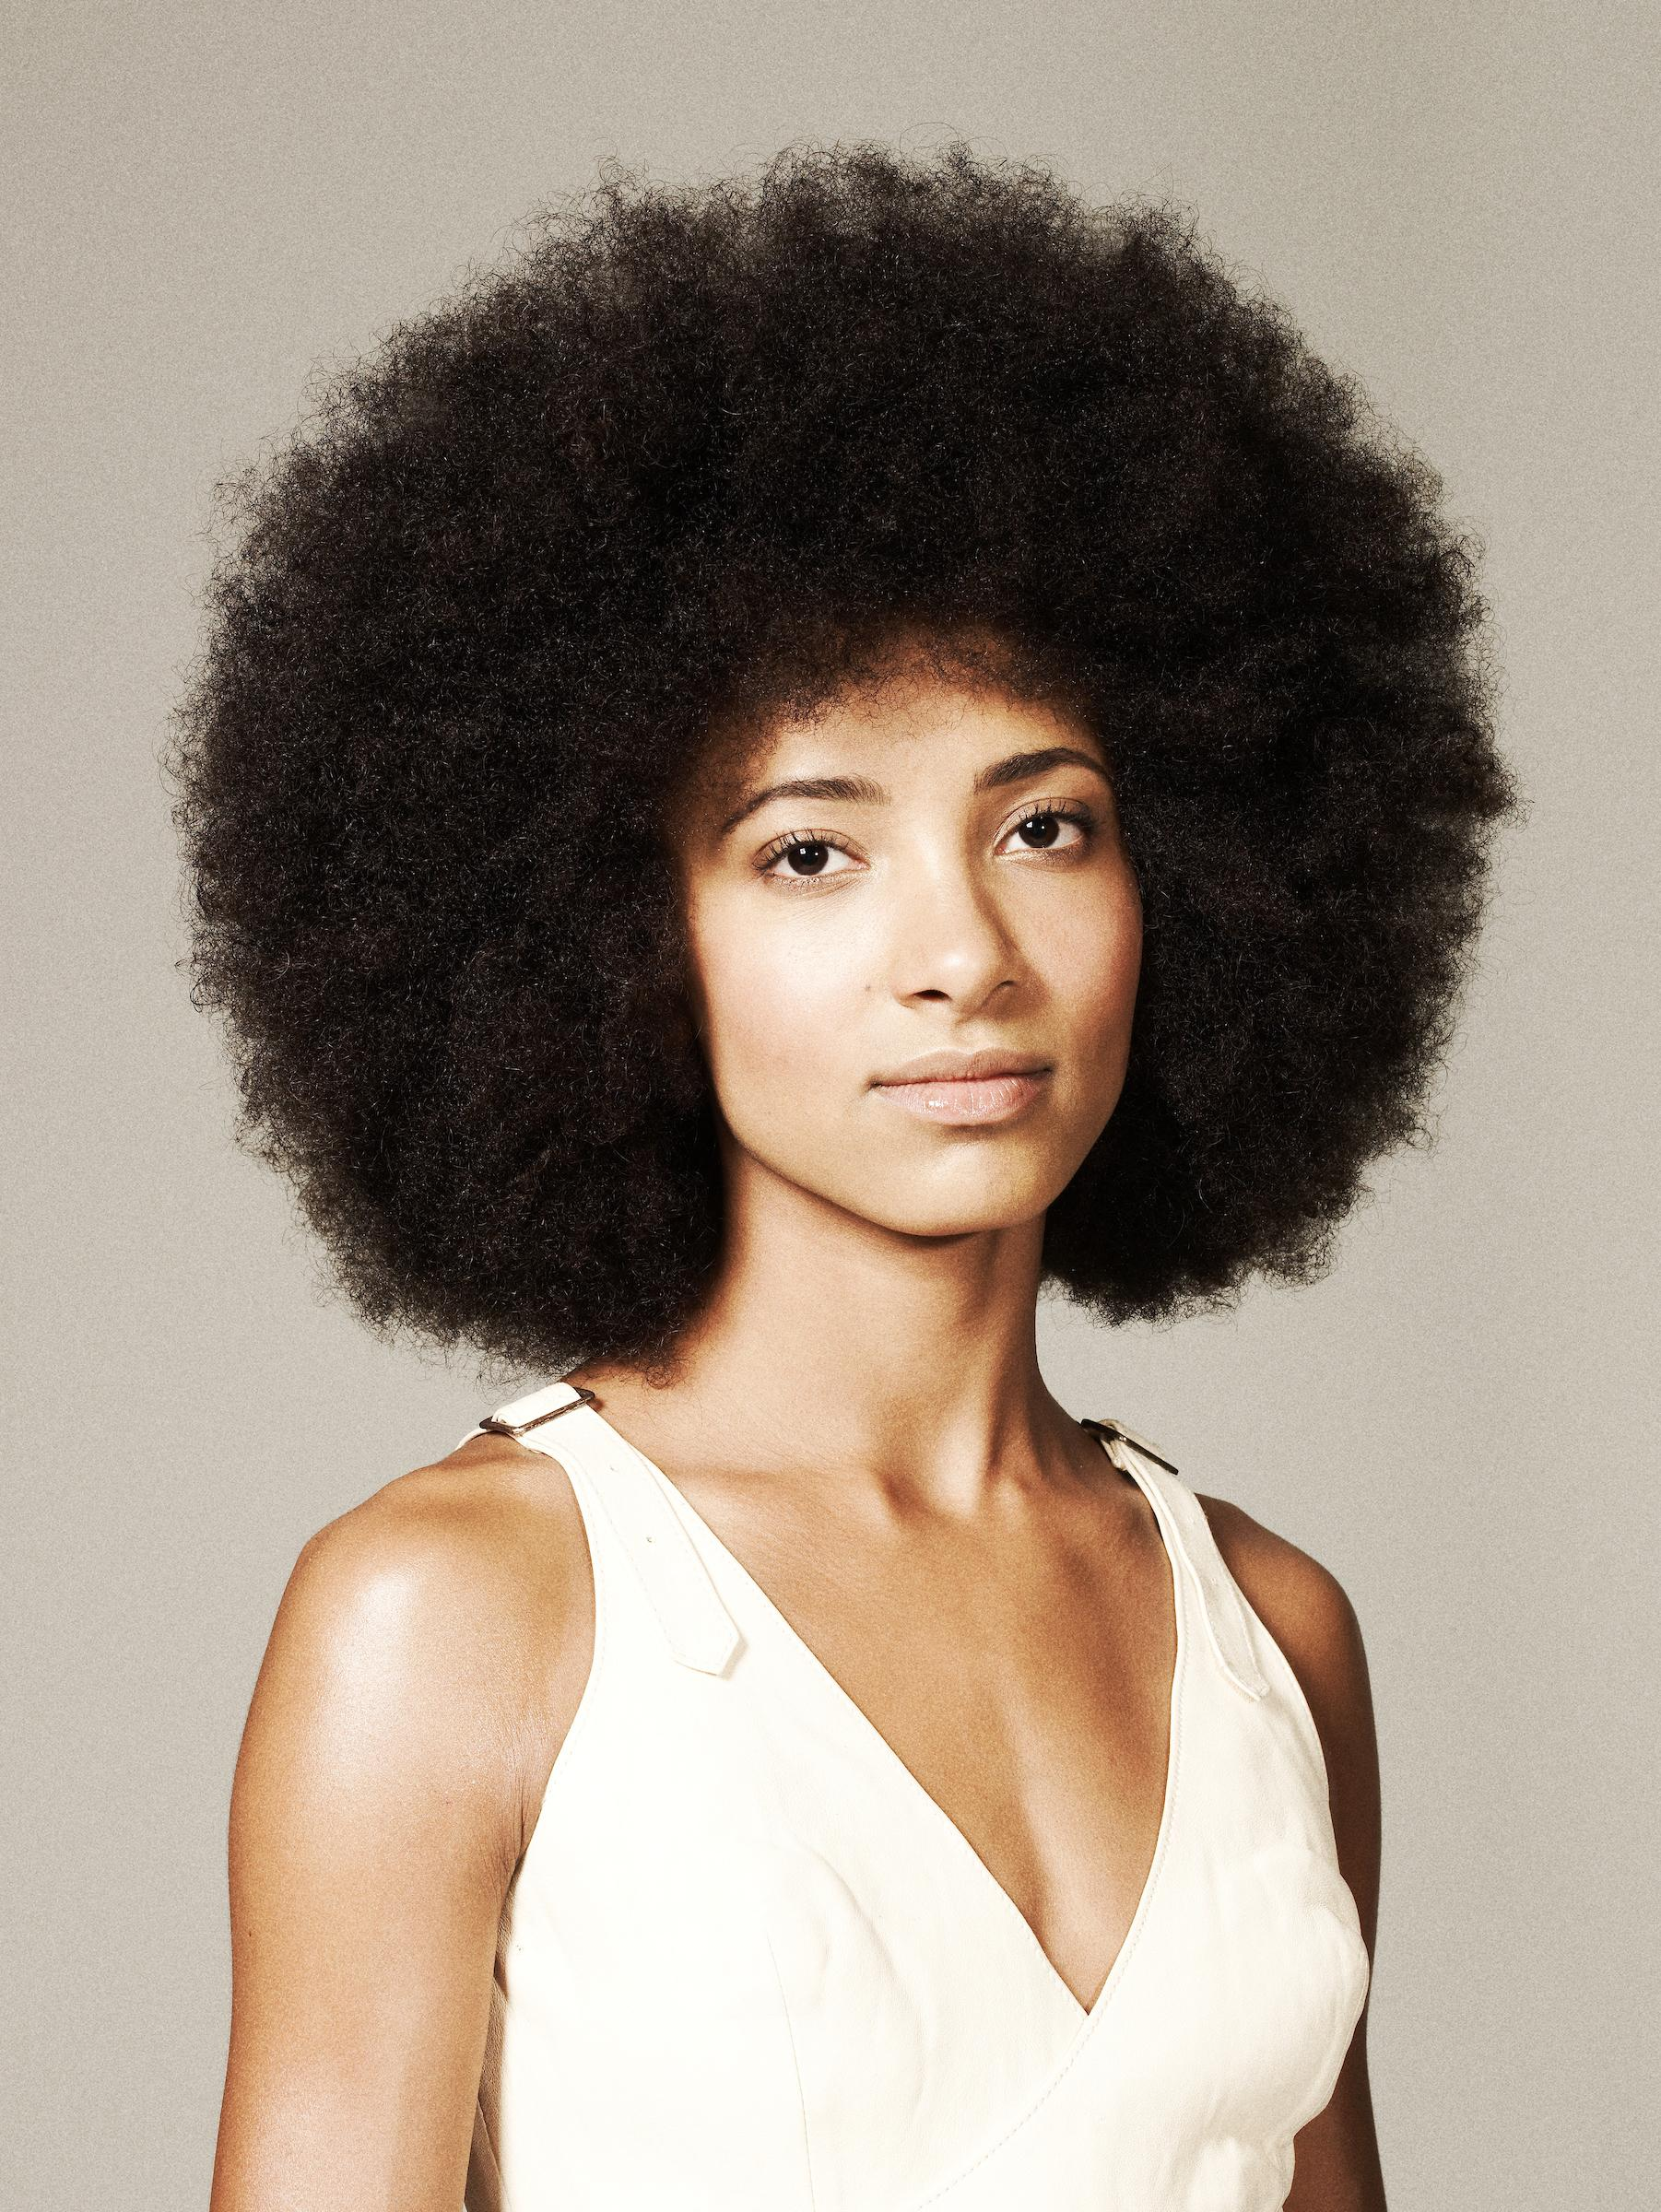 Esperanza Spalding: Jazz Musician, Grammy Award Winner and Now Museum Curator